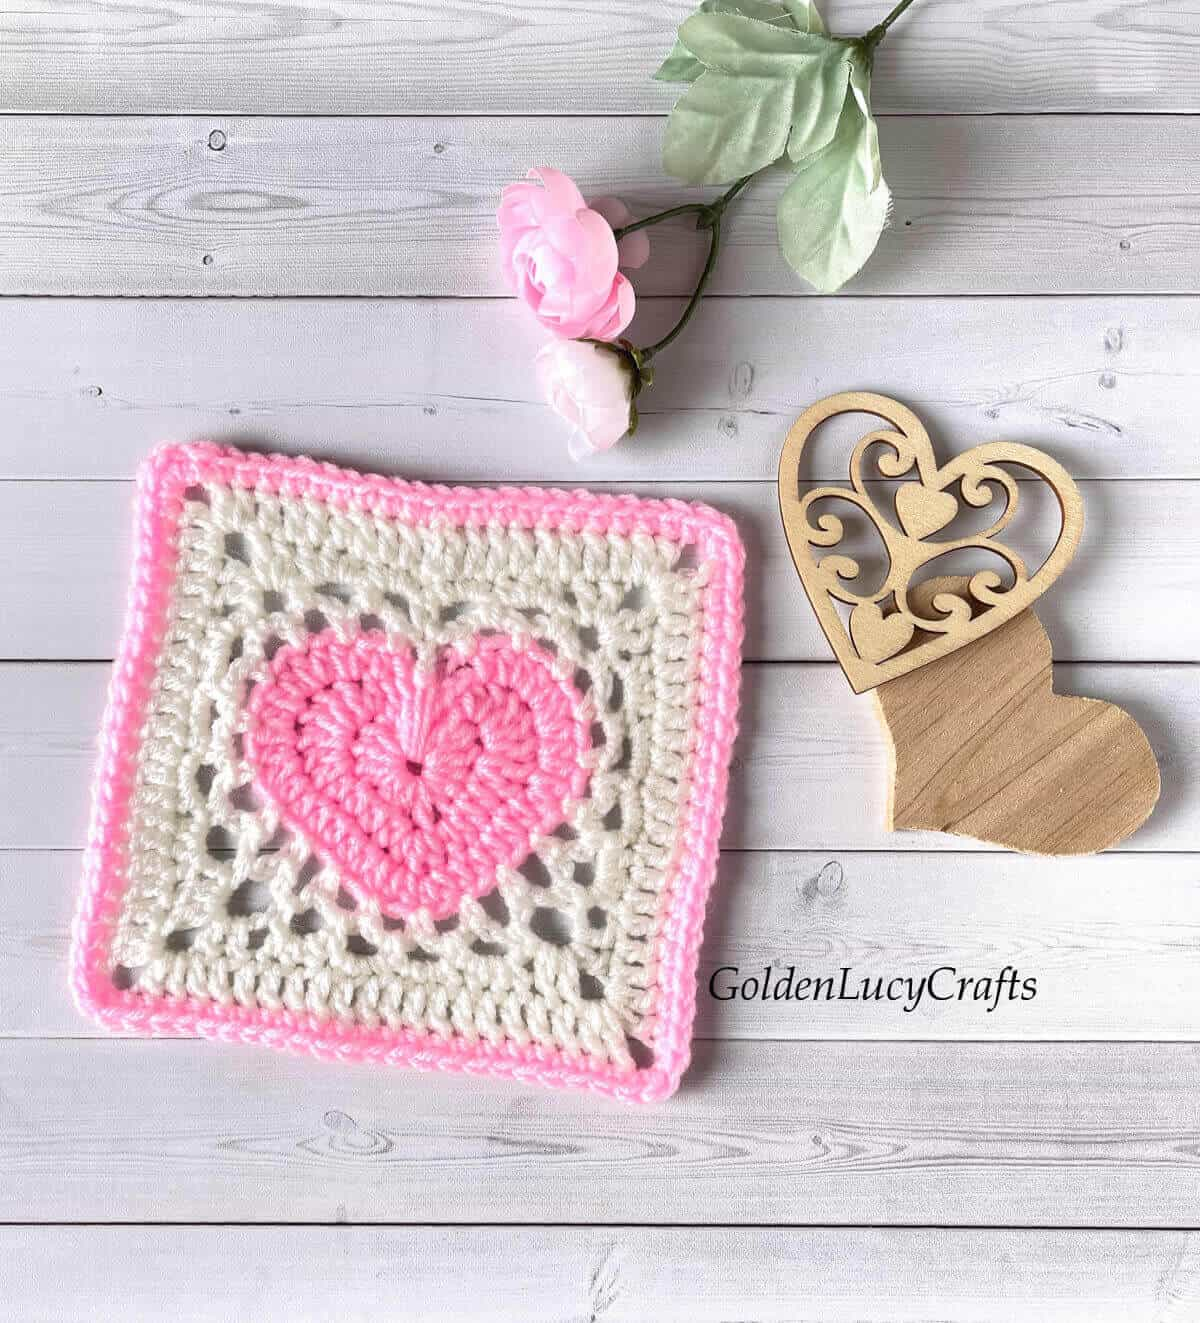 Pink and white crochet heart granny square, two wooden hearts and pink flower.